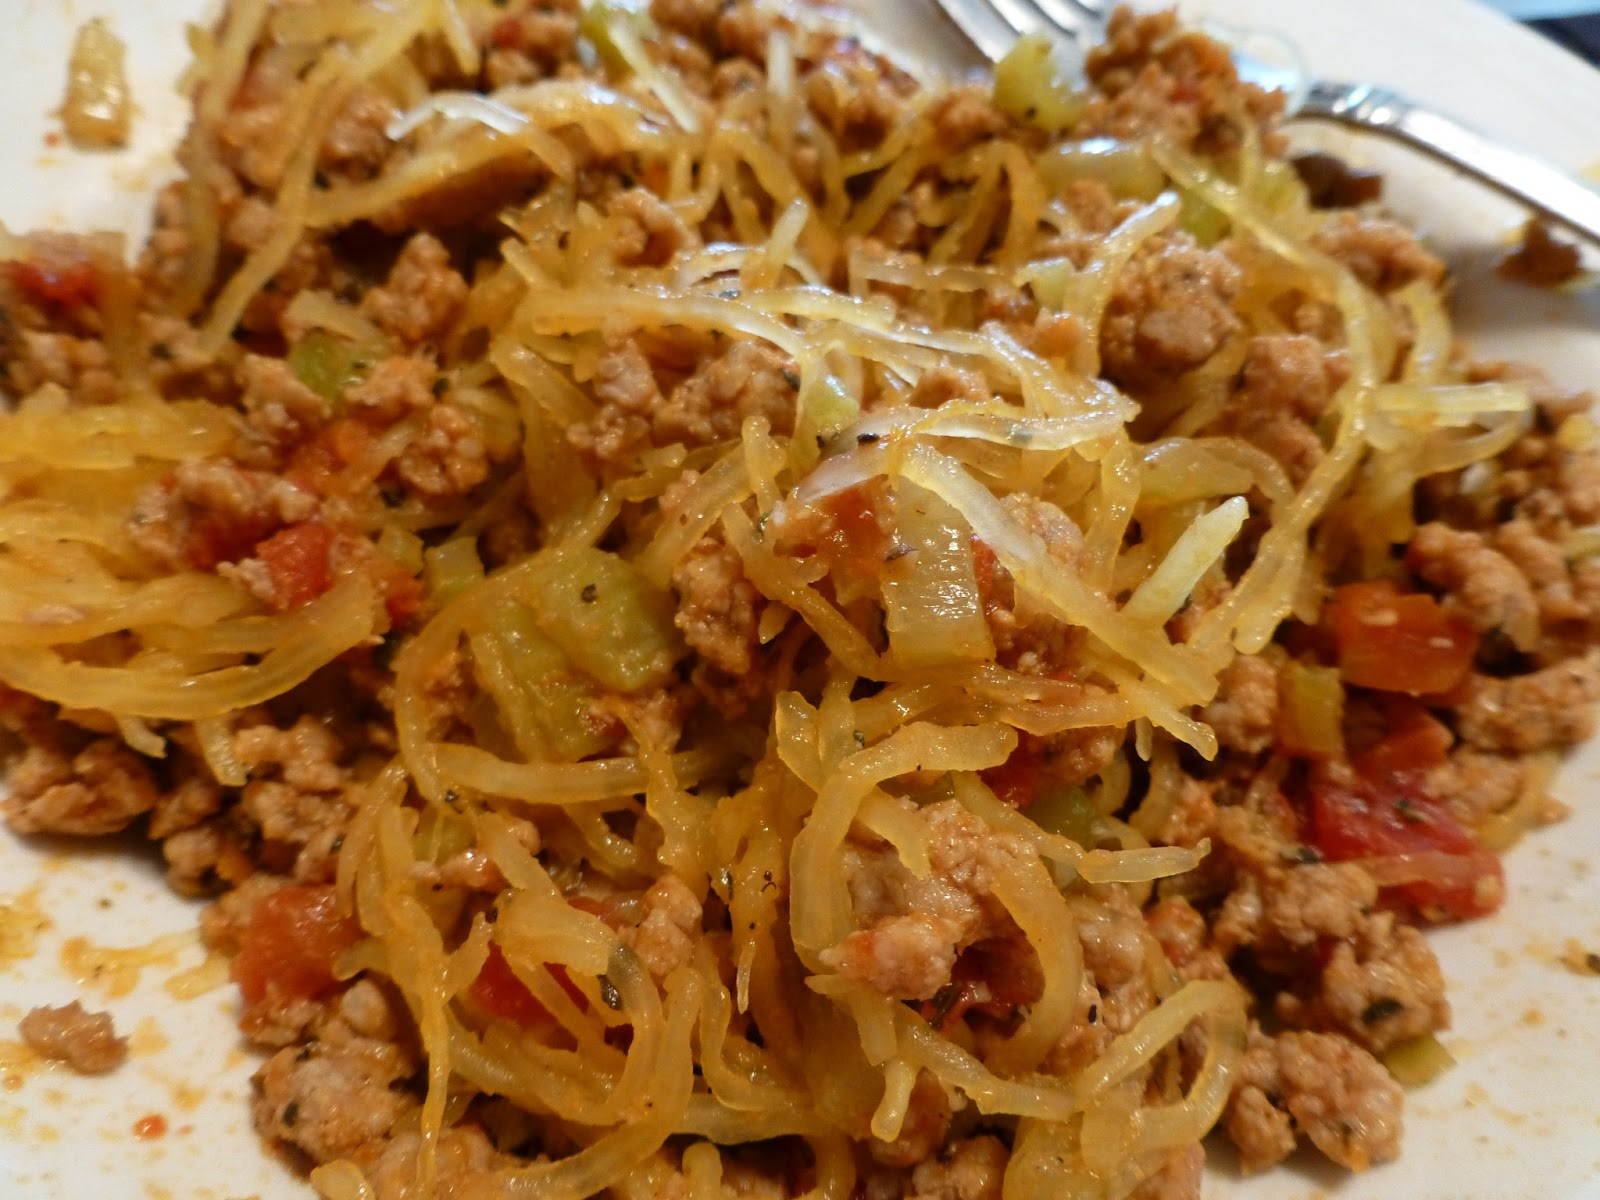 ... One Fat Girl's Journey to Getting Healthy: Spaghetti with Meat Sauce